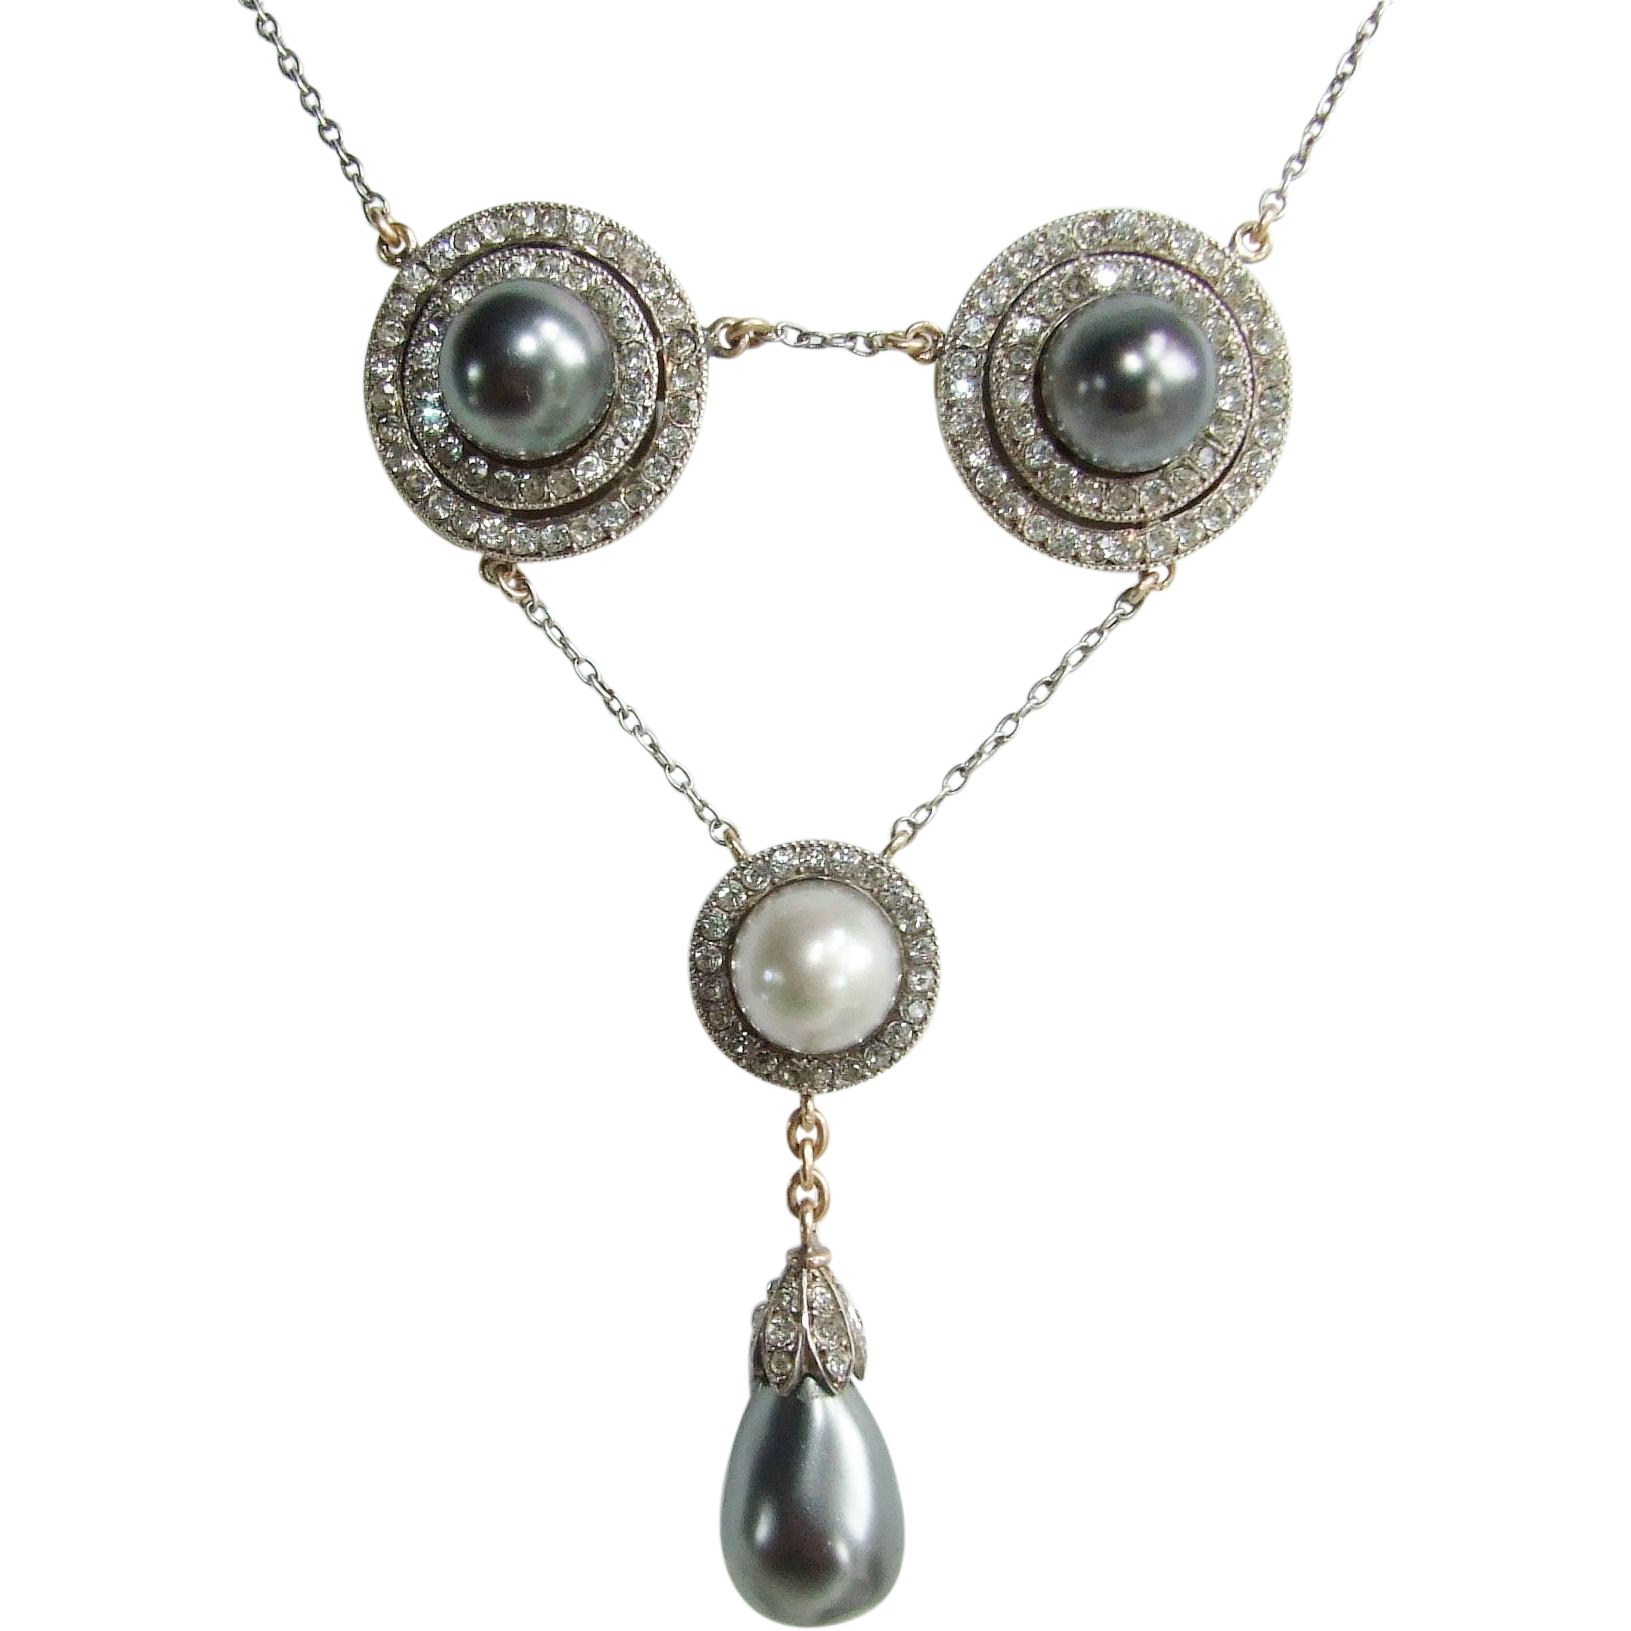 Stunning Antique Belle Epoque Paste and Faux Pearl Necklace Silver and 14k Gold!